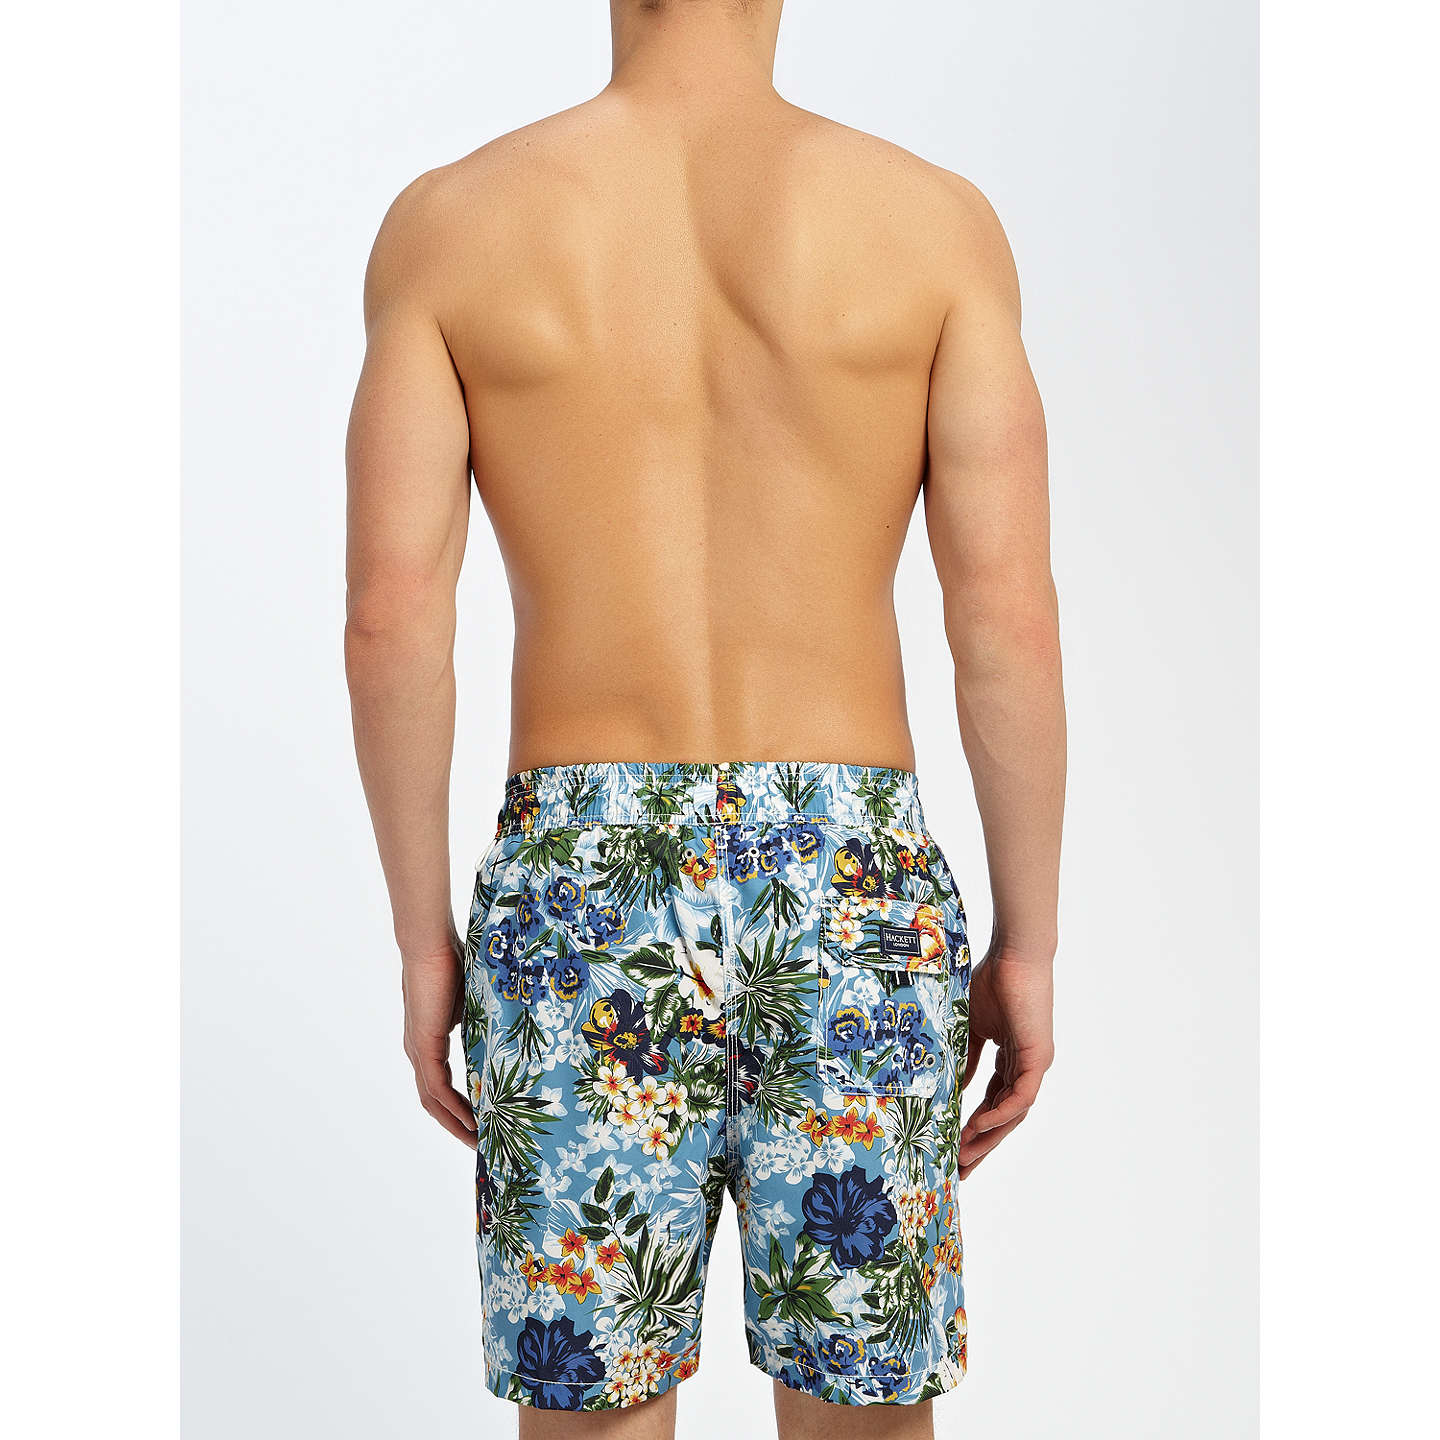 BuyHackett London Tropical Swim Shorts, Multi, M Online at johnlewis.com